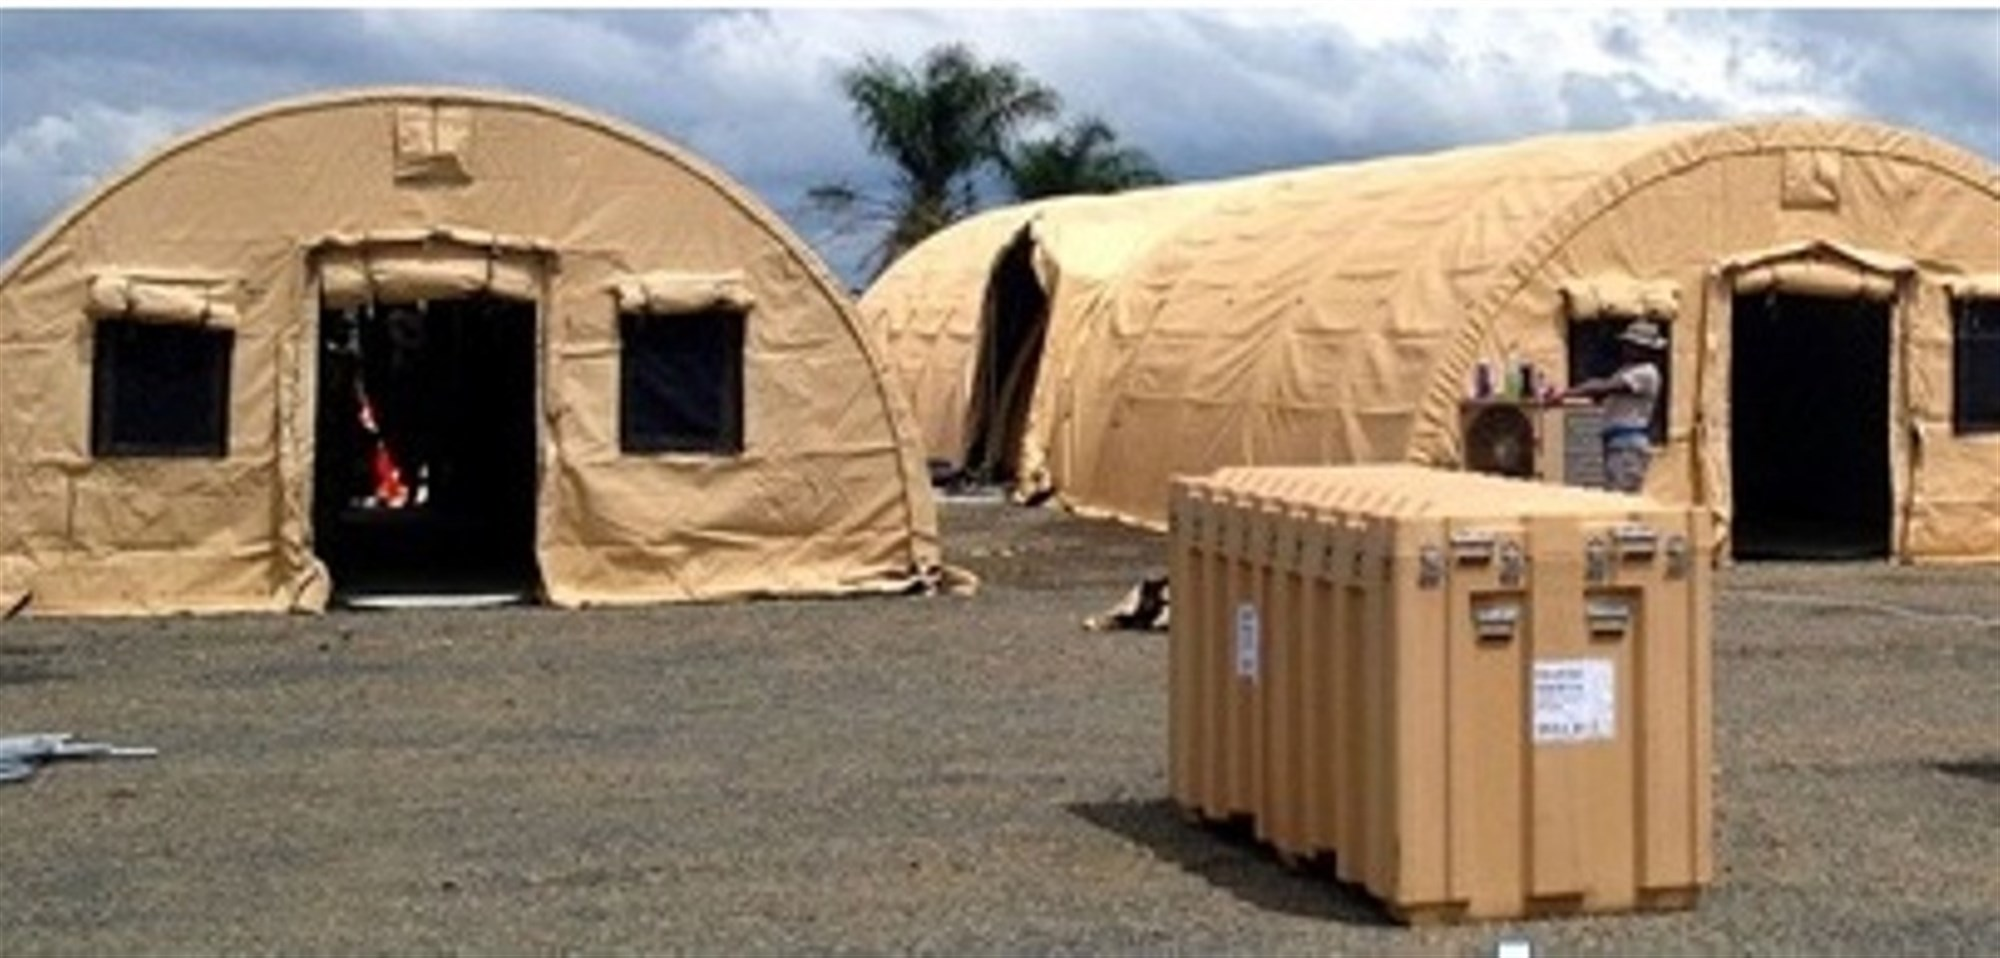 Force Provider equipment used to  support Soldiers in Liberia. Deliberate planning and actions across the entire logistics enterprise united the efforts of a multi-disciplined, interagency team formed across nations, governments and non-government organizations (NGOs) which directly led to success in OPERATION United Assistance. (U.S. AFRICOM photo/released)